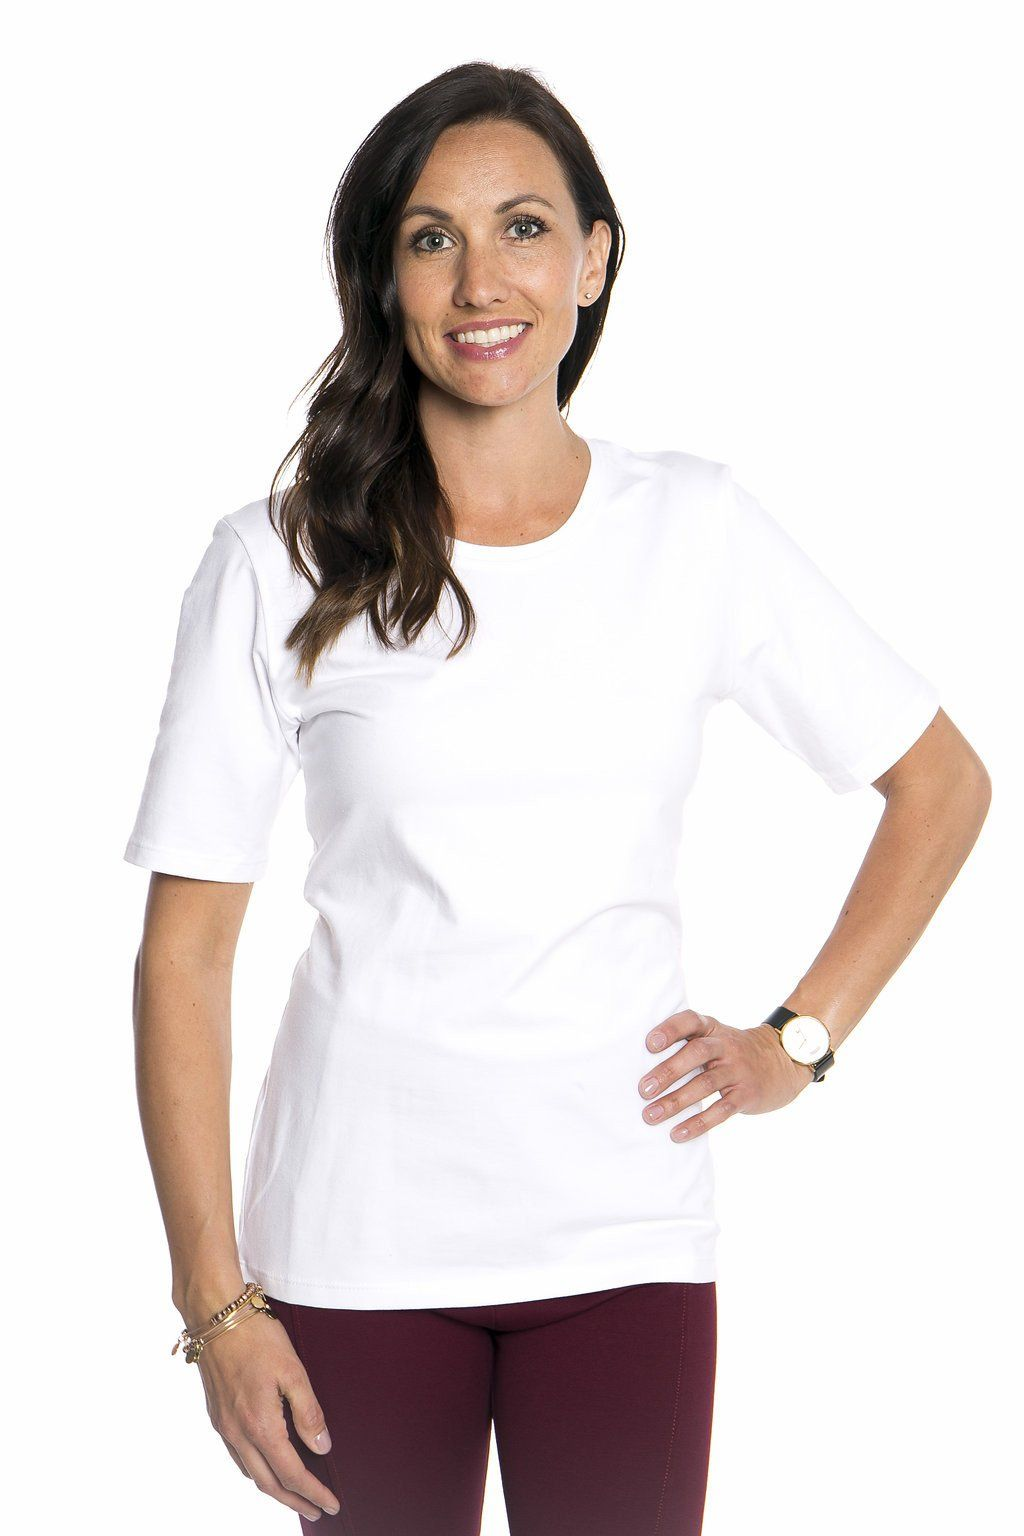 Scoop Neck 1/2 Sleeve w/o Cuff* - White - S-XL